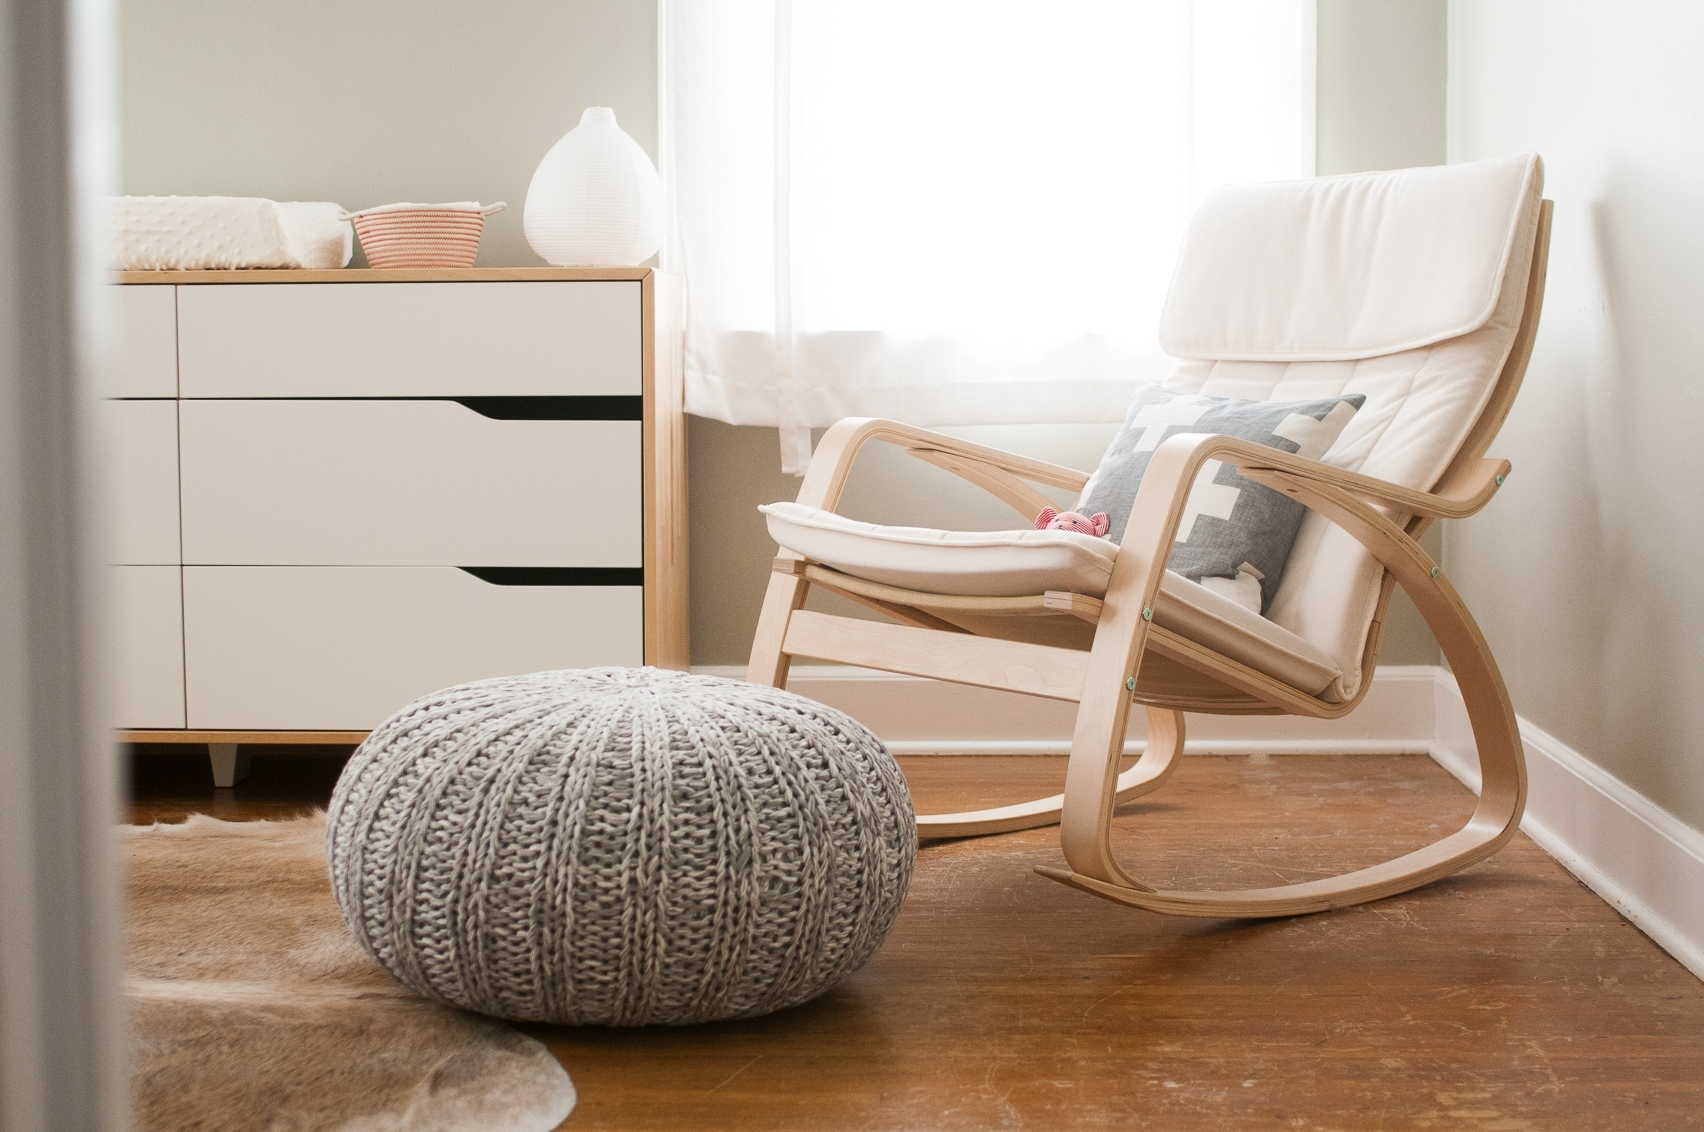 Rocking Chairs For Nursing Throughout Newest Nursery Rocking Chair, Rocks! – Tcg (View 5 of 15)